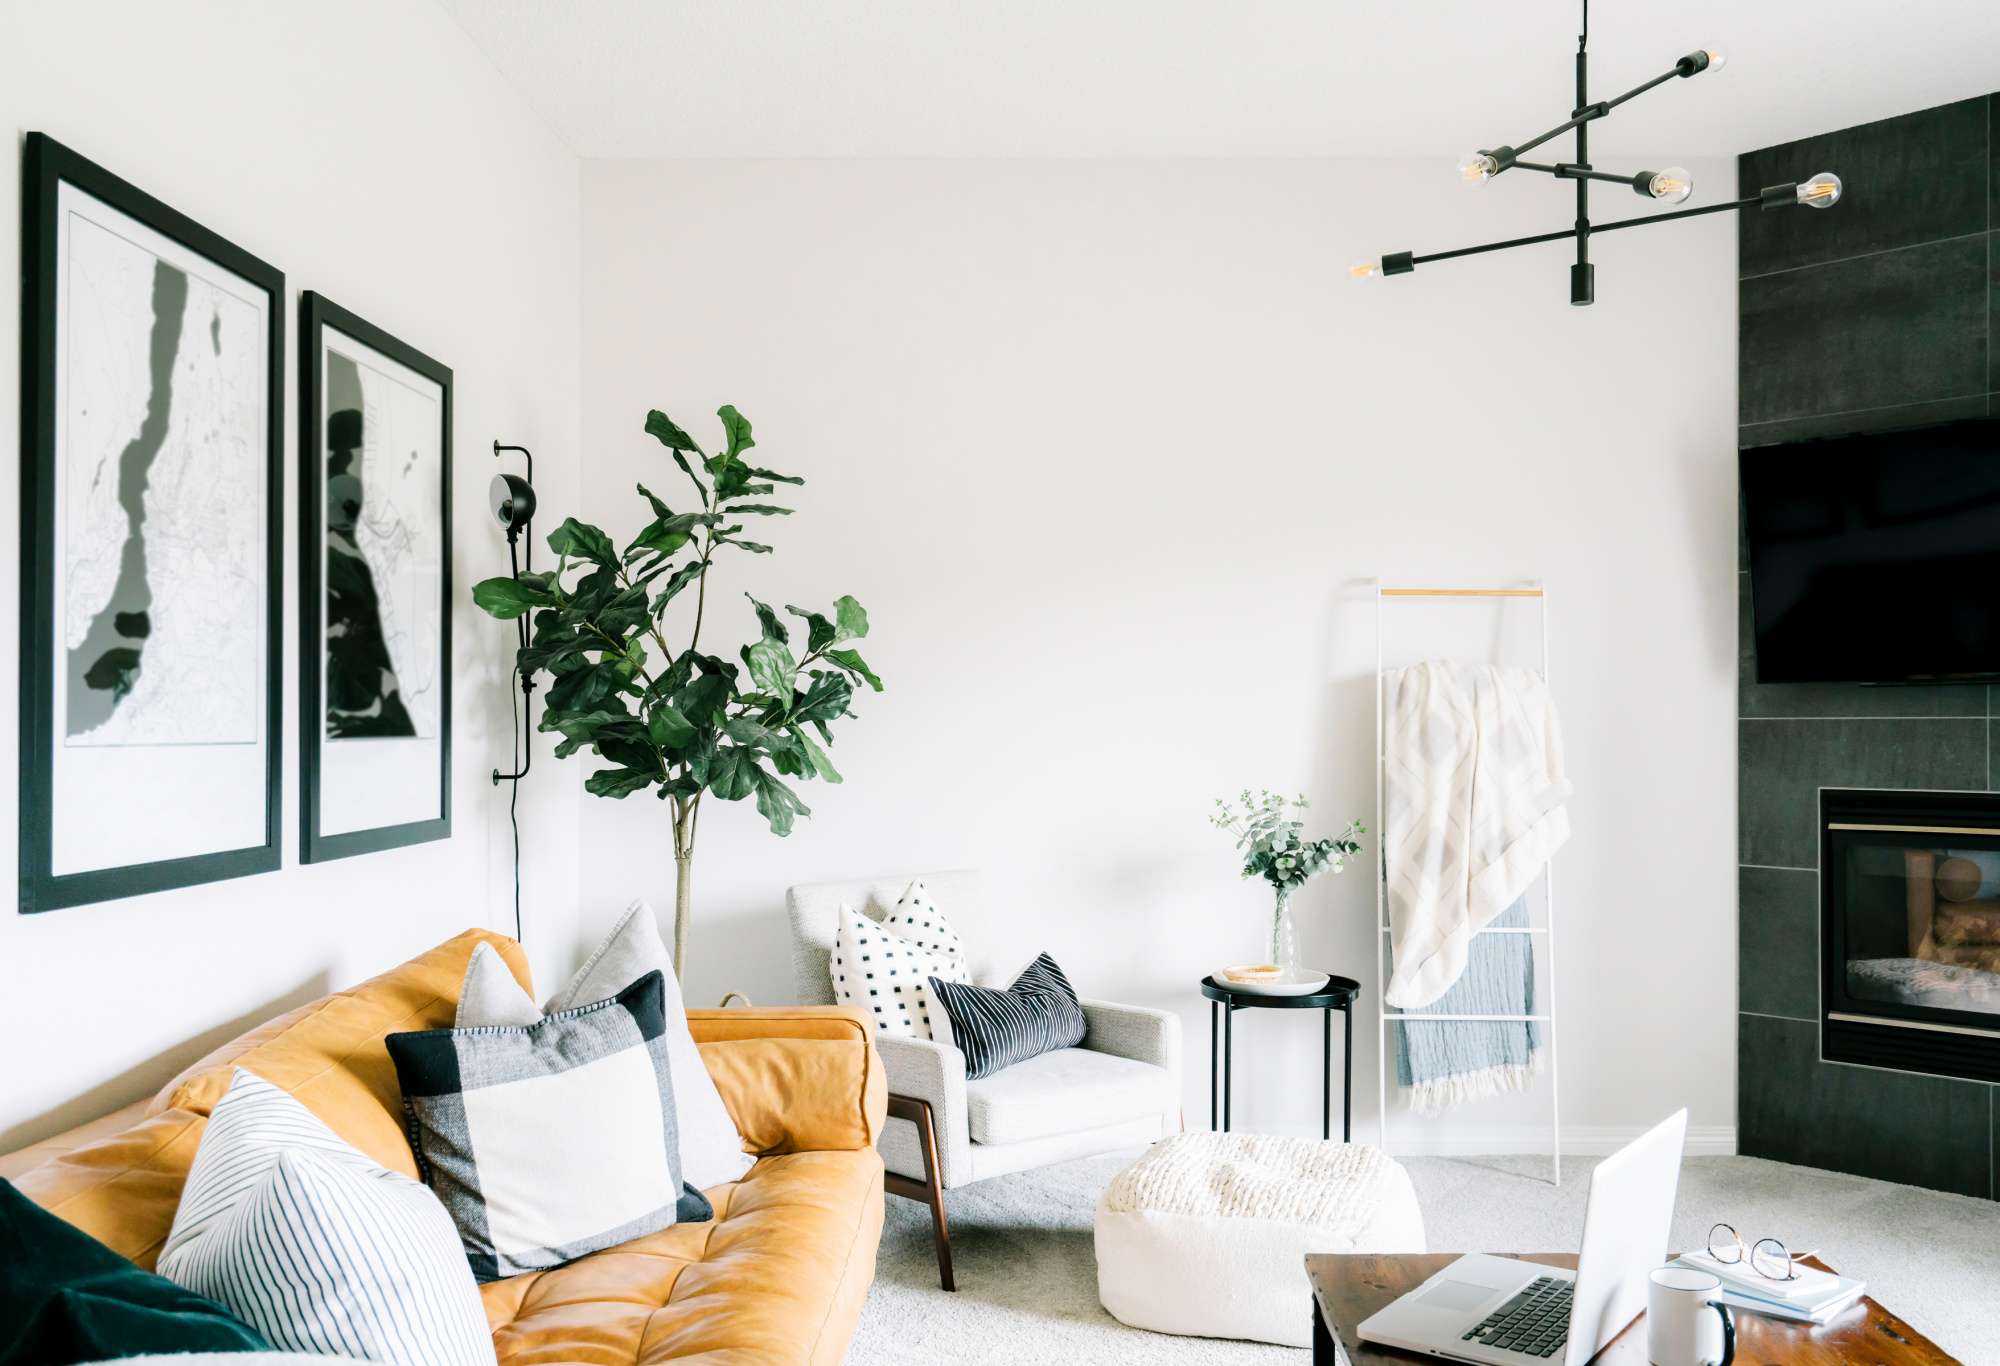 How To Mix Prints In Your Home Like A Pro